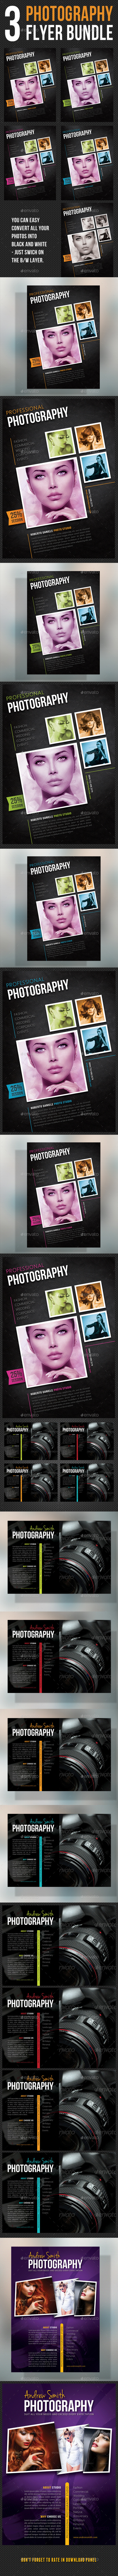 GraphicRiver 3 in 1 Photography Multipurpose Flyer Bundle 05 10214106